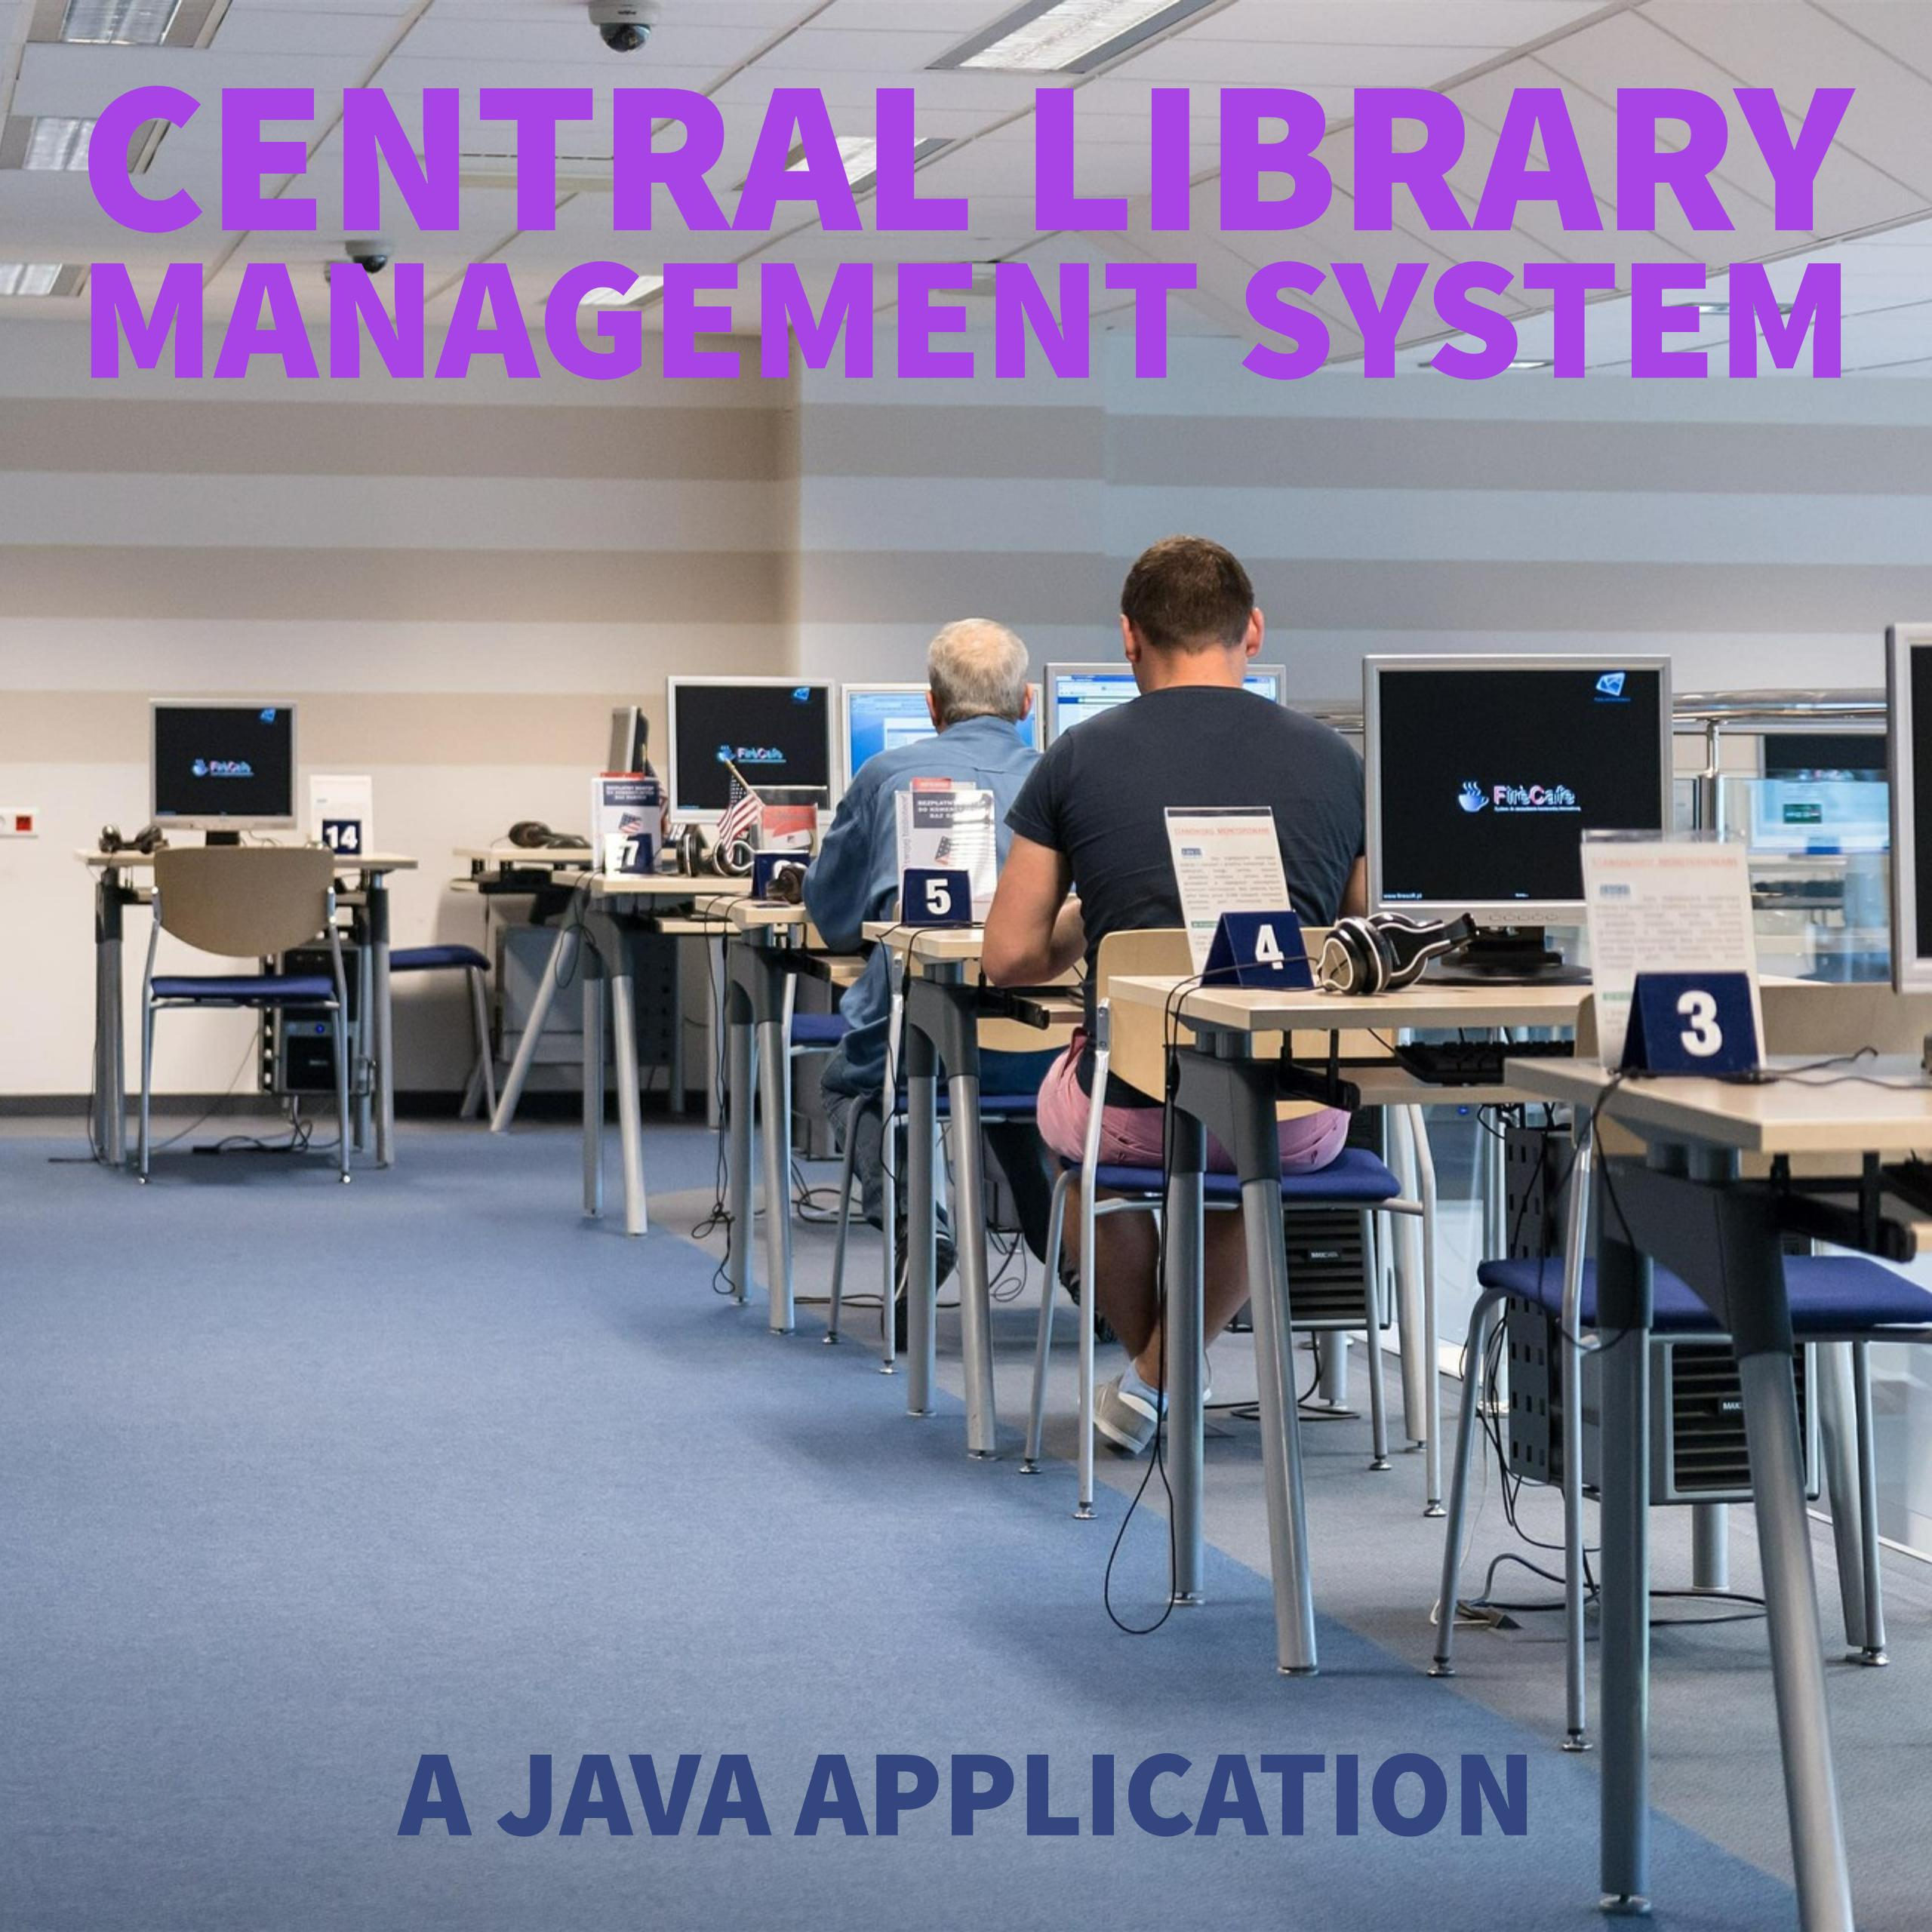 Central Library Management System - CodeMint Mint for Sale